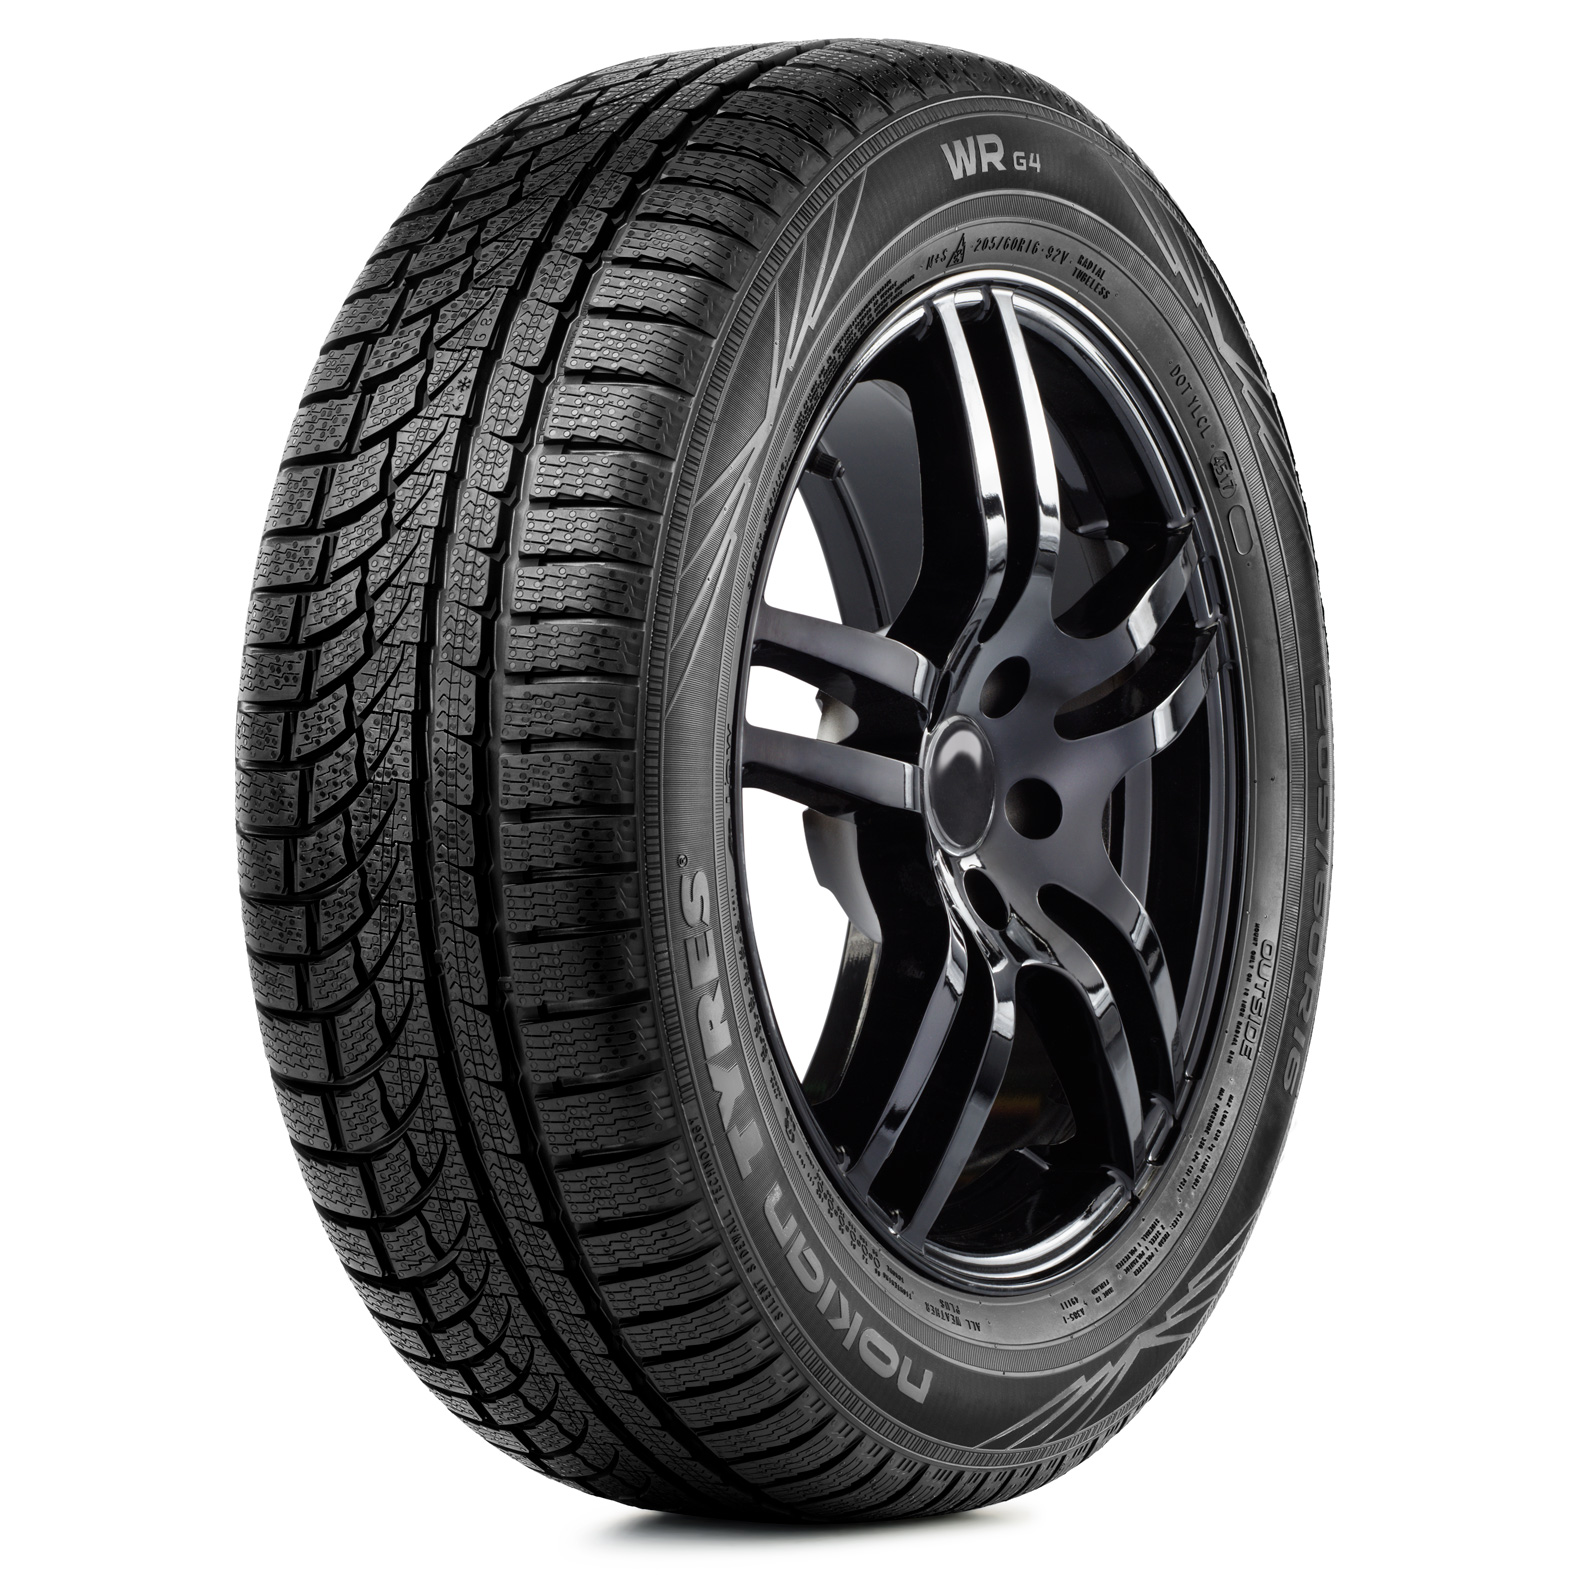 Nokian Tyres WRG4 tire - angle